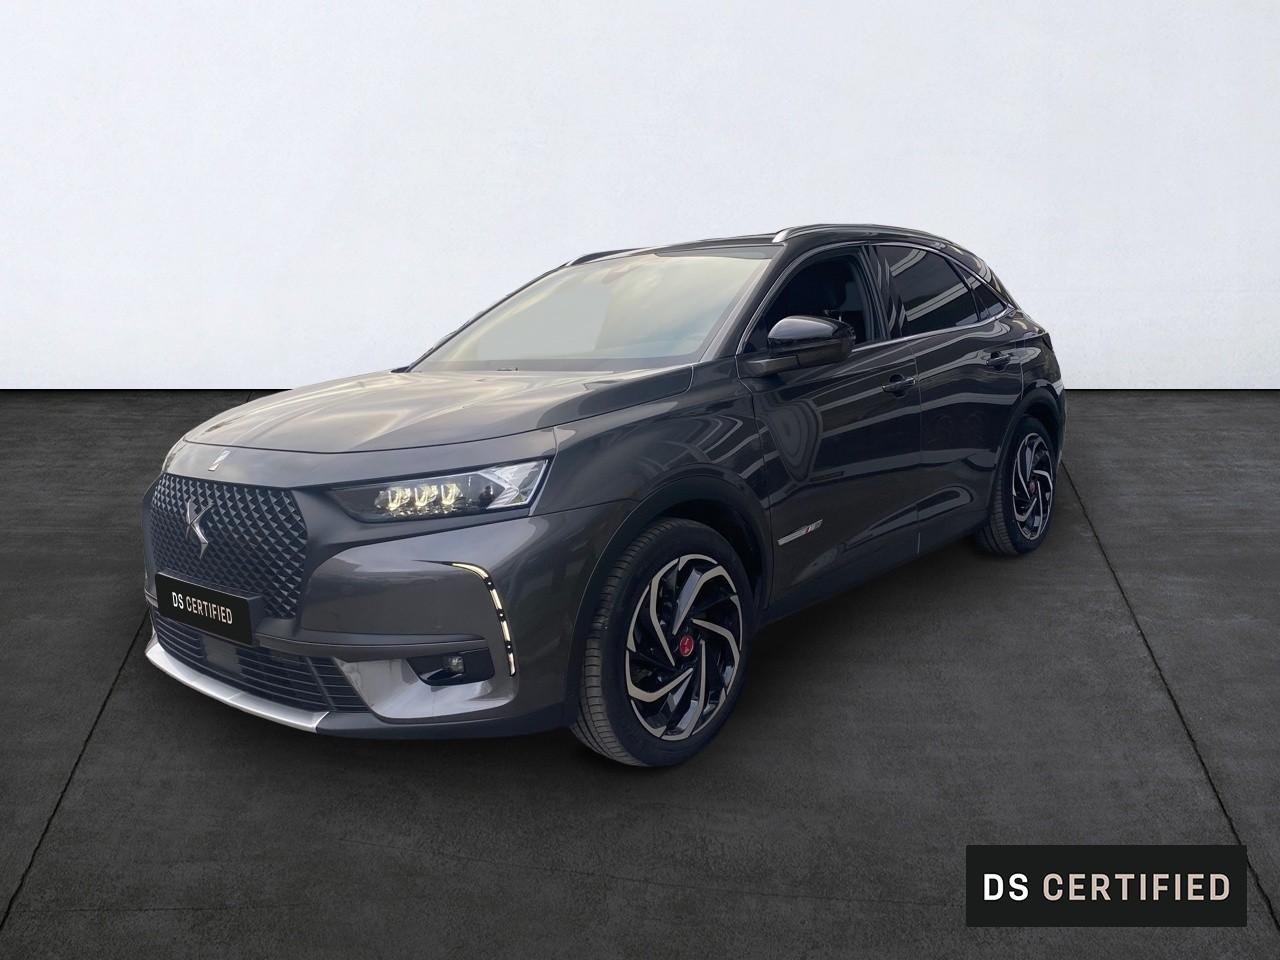 Ds DS 7 Crossback E-Tense 4x4 PERFORMANCE Line